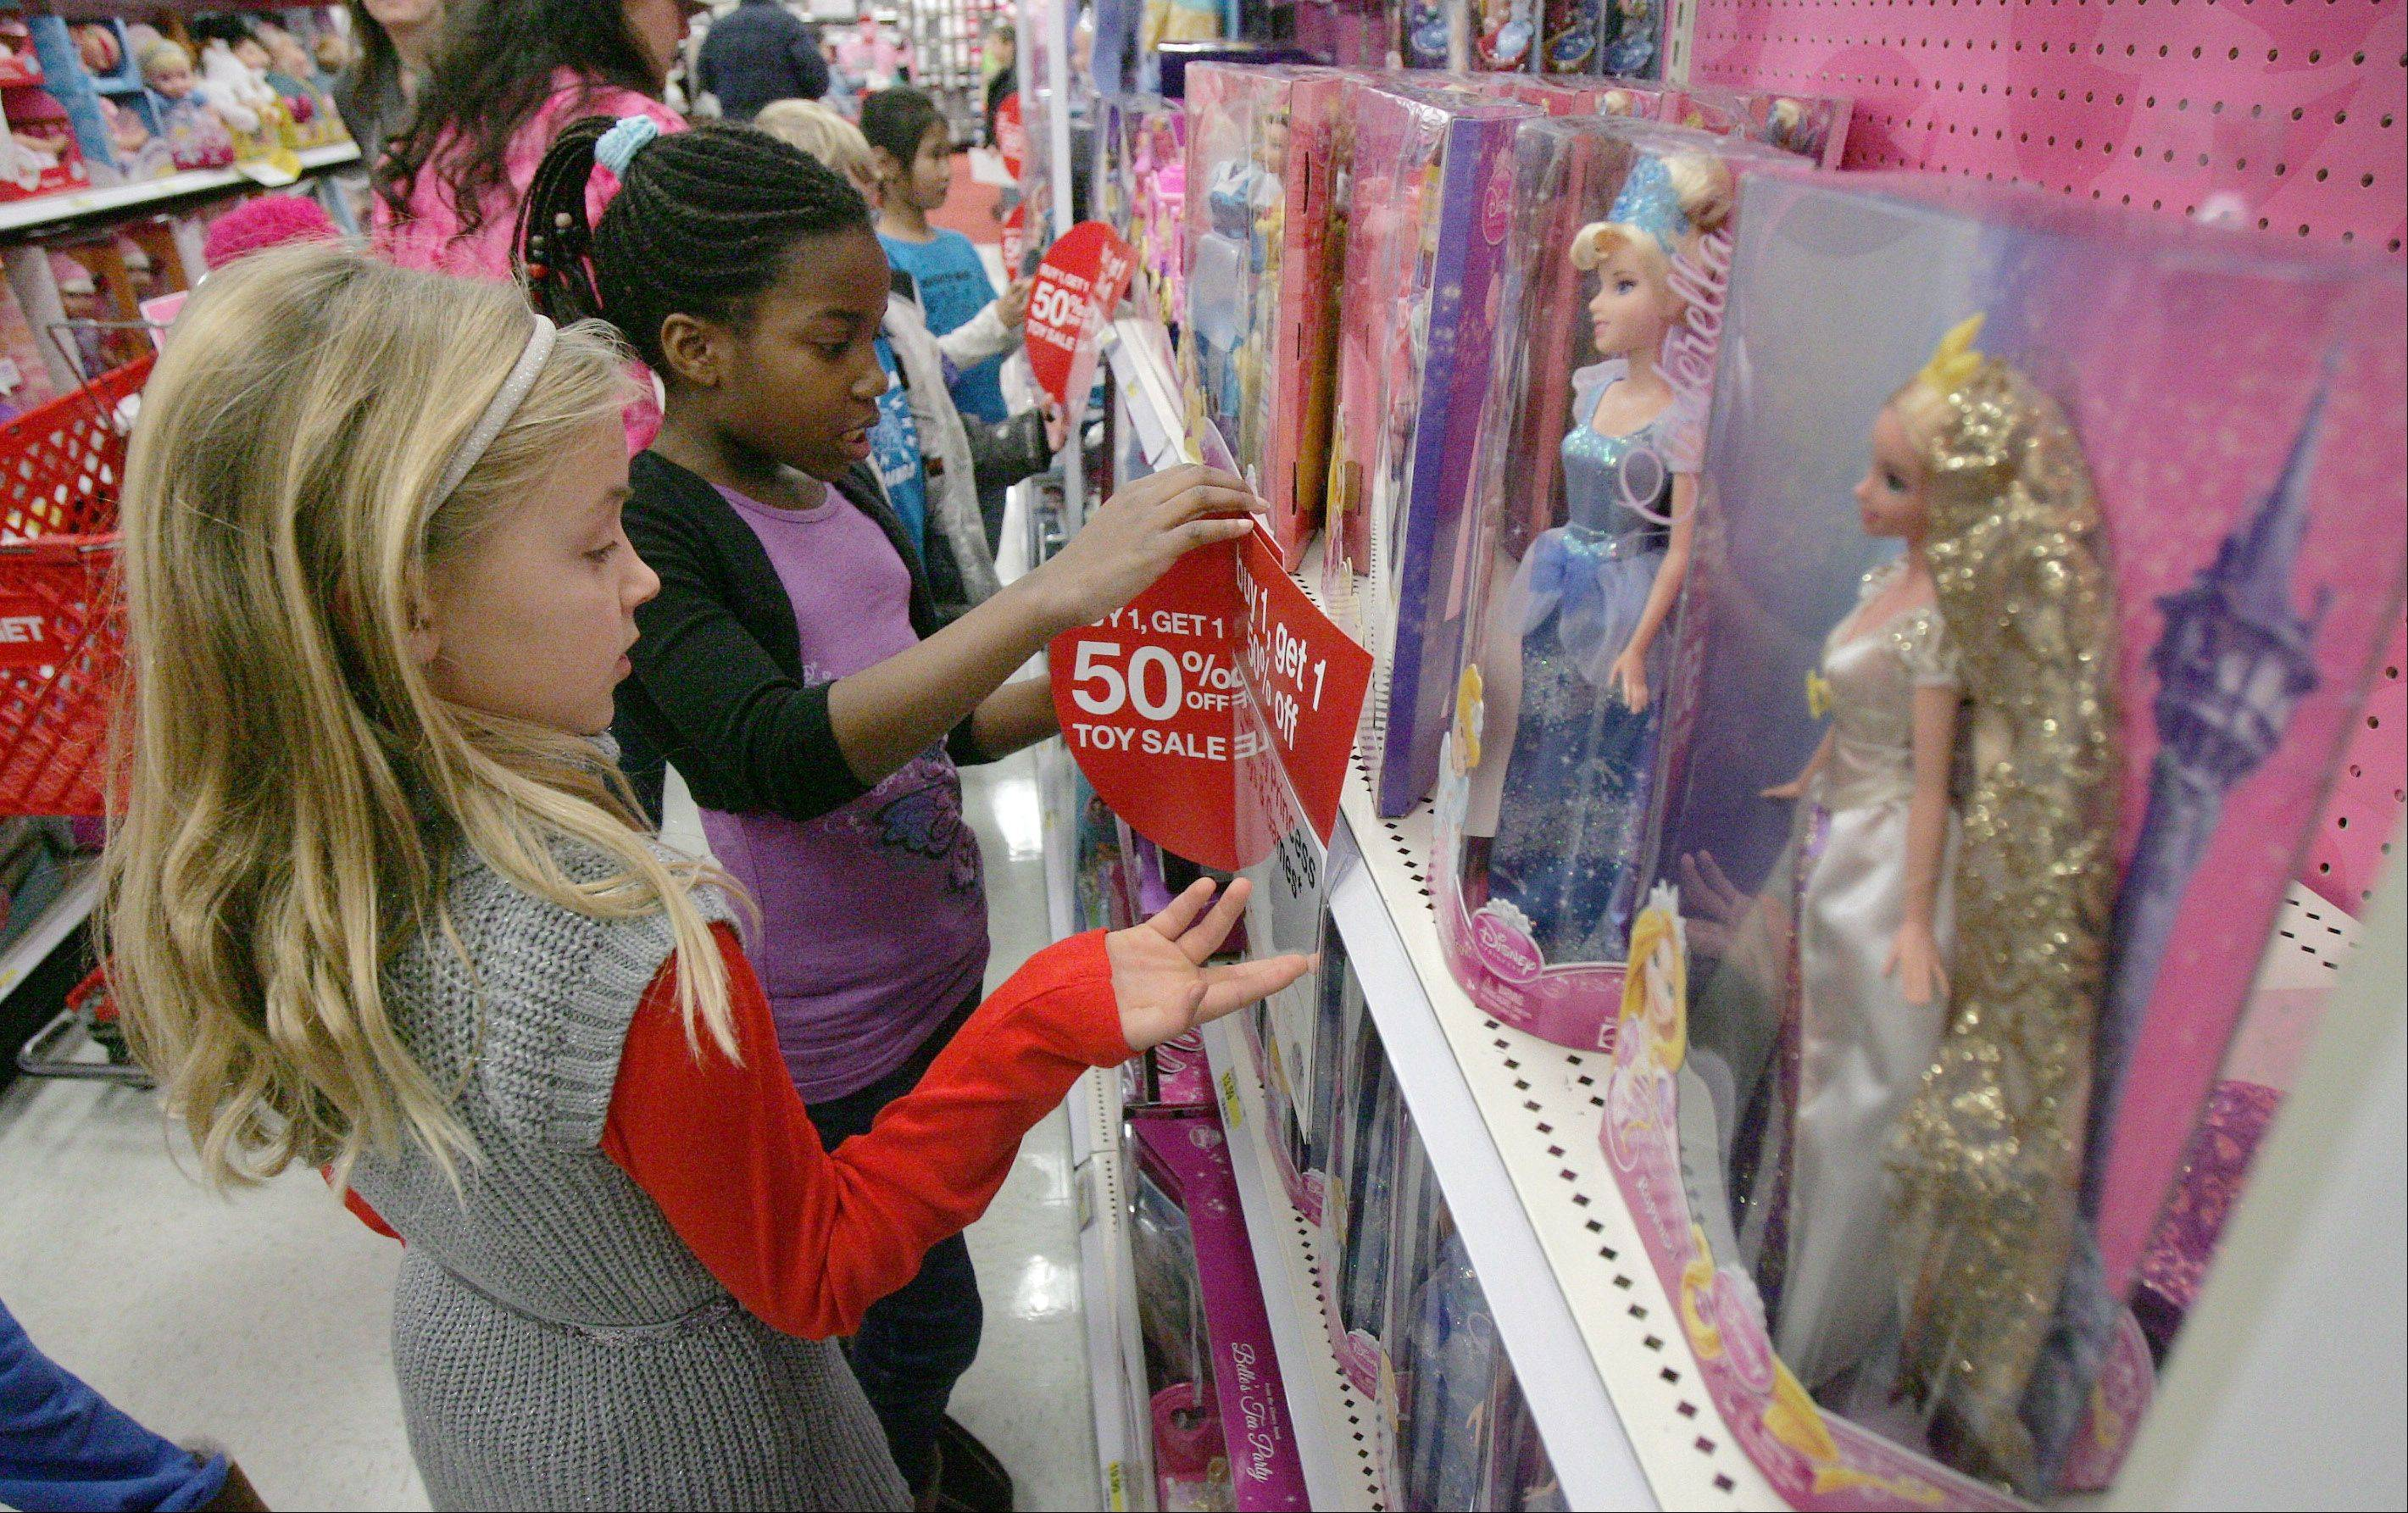 Fremont School third-graders Payton Regan, left, and Bethel Mensah look at dolls as students shop for clothes and toys Wednesday at Target in Mundelein to help needy families for the holidays. It was part of the school's Sponsor A Family program, which helps provide gifts for 30 children.